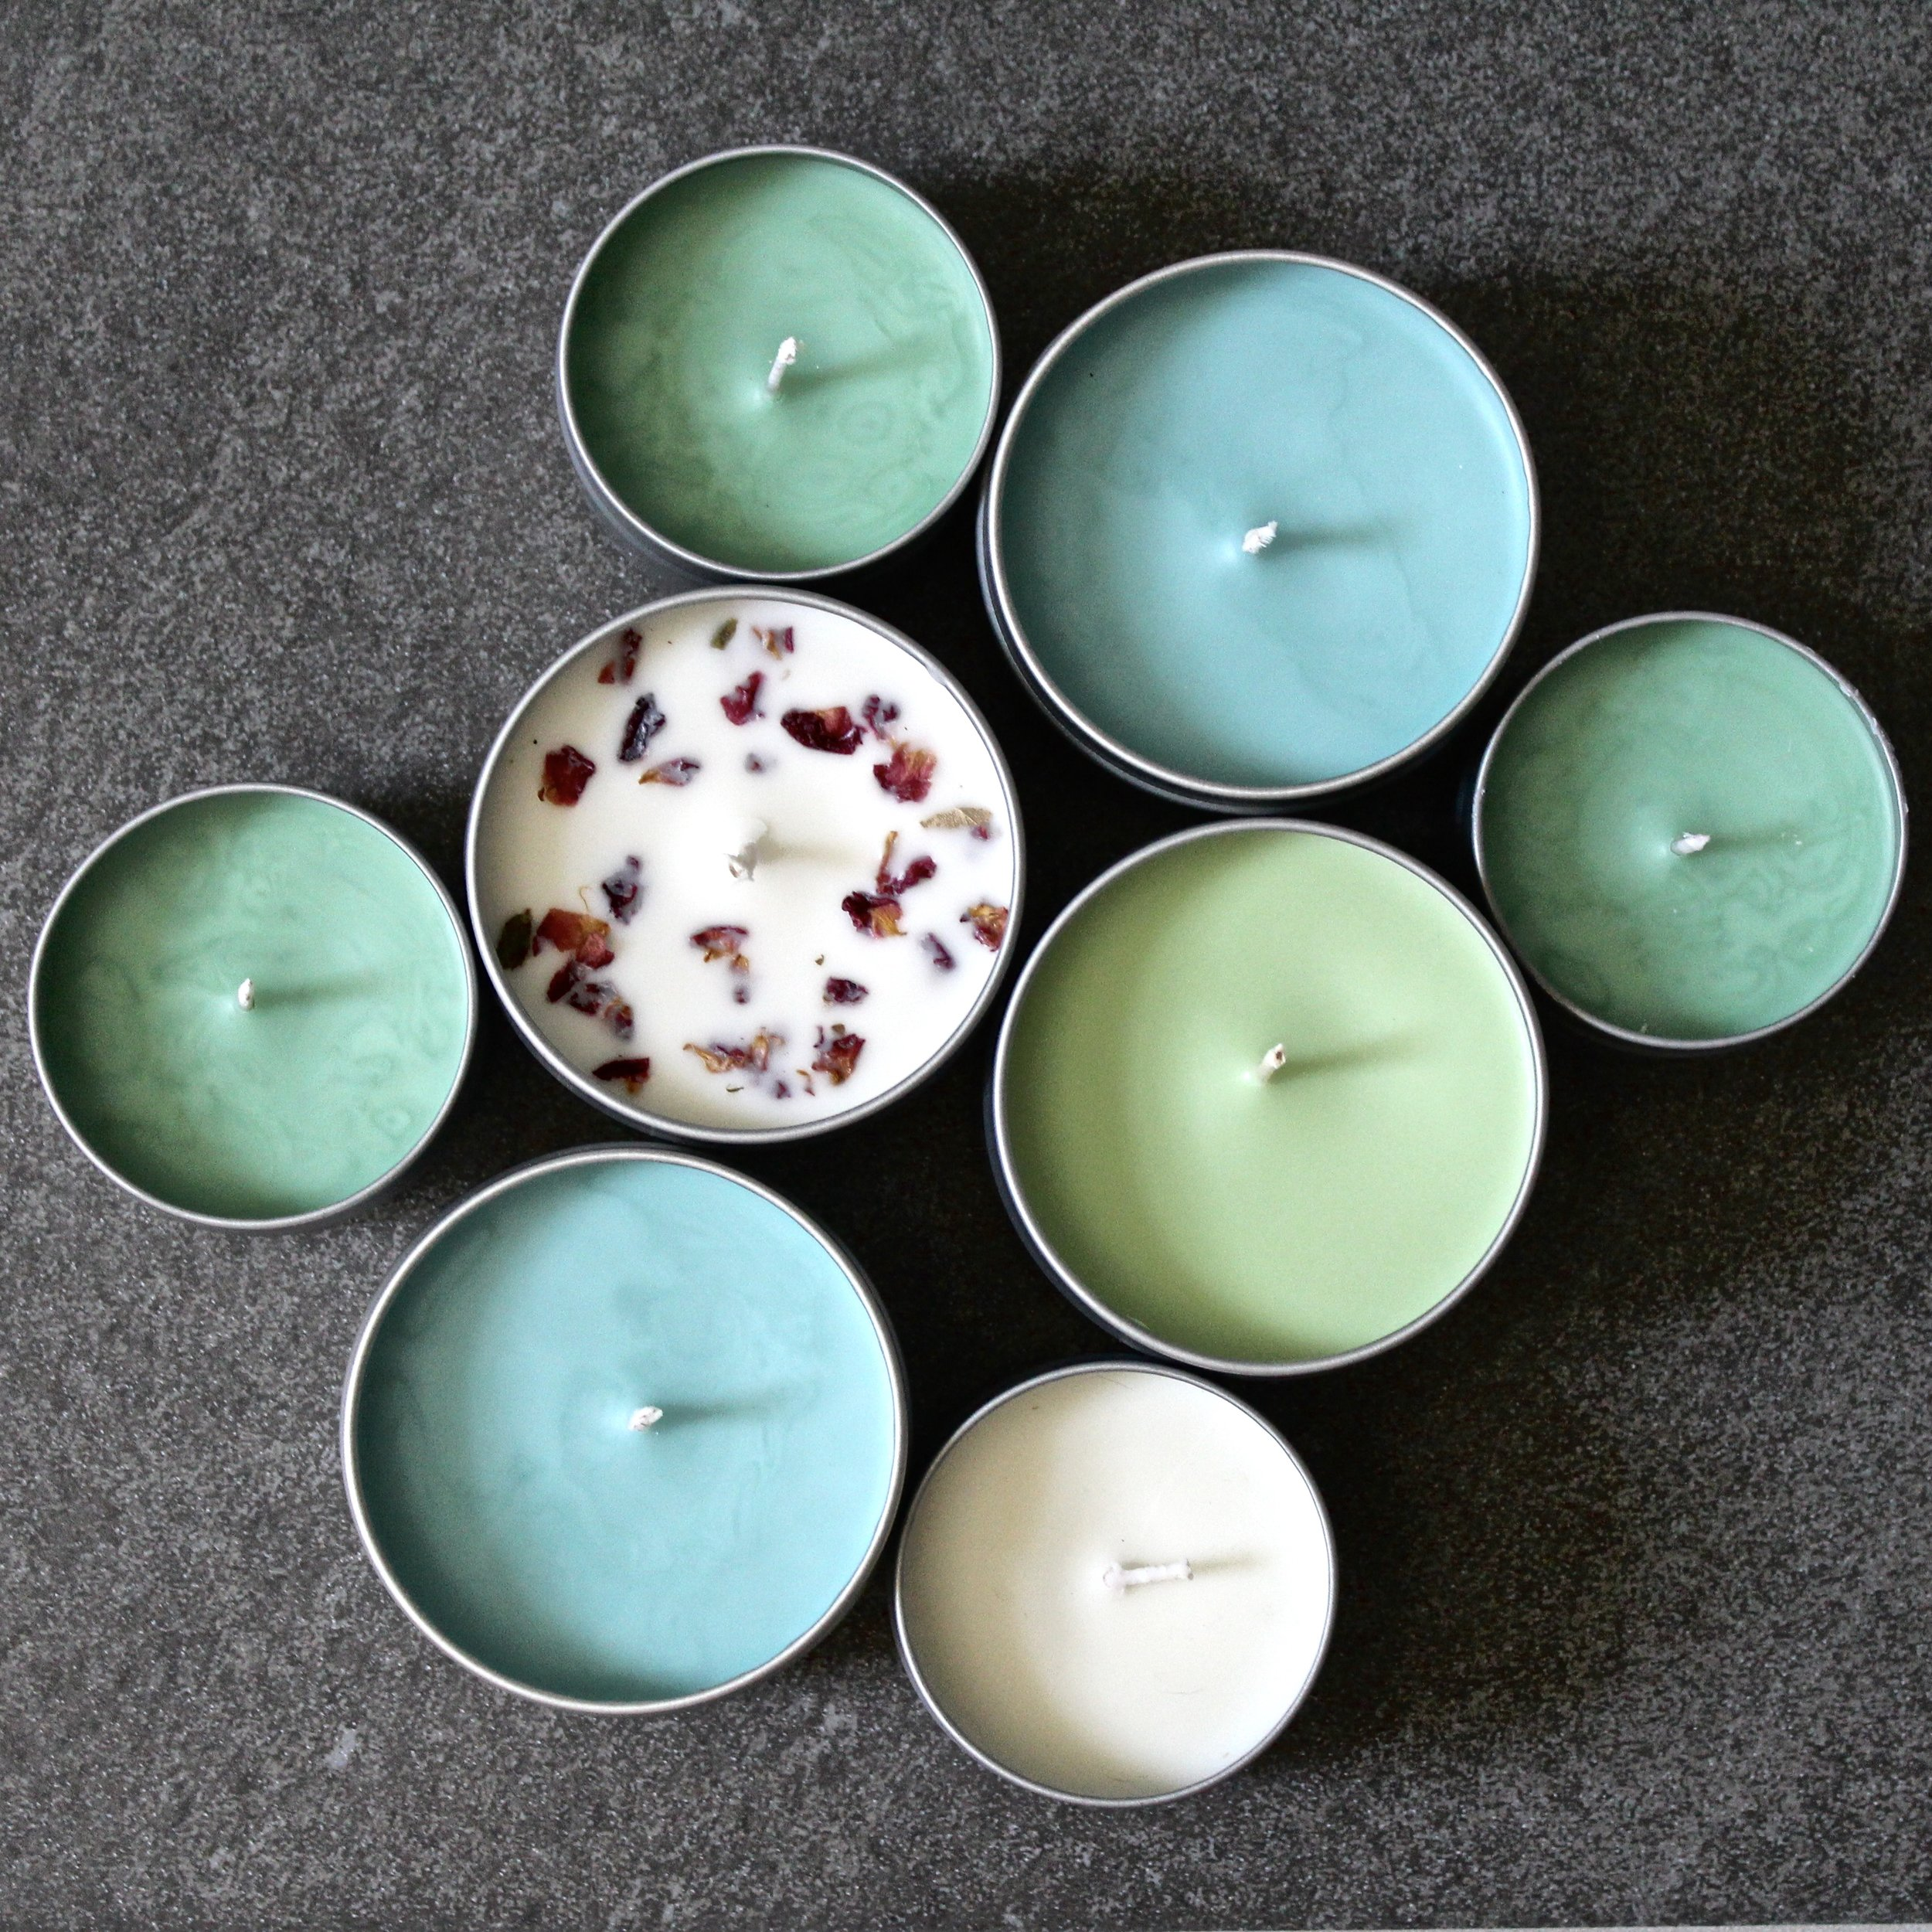 Choose candles that are healthy for you, your family & the environment.